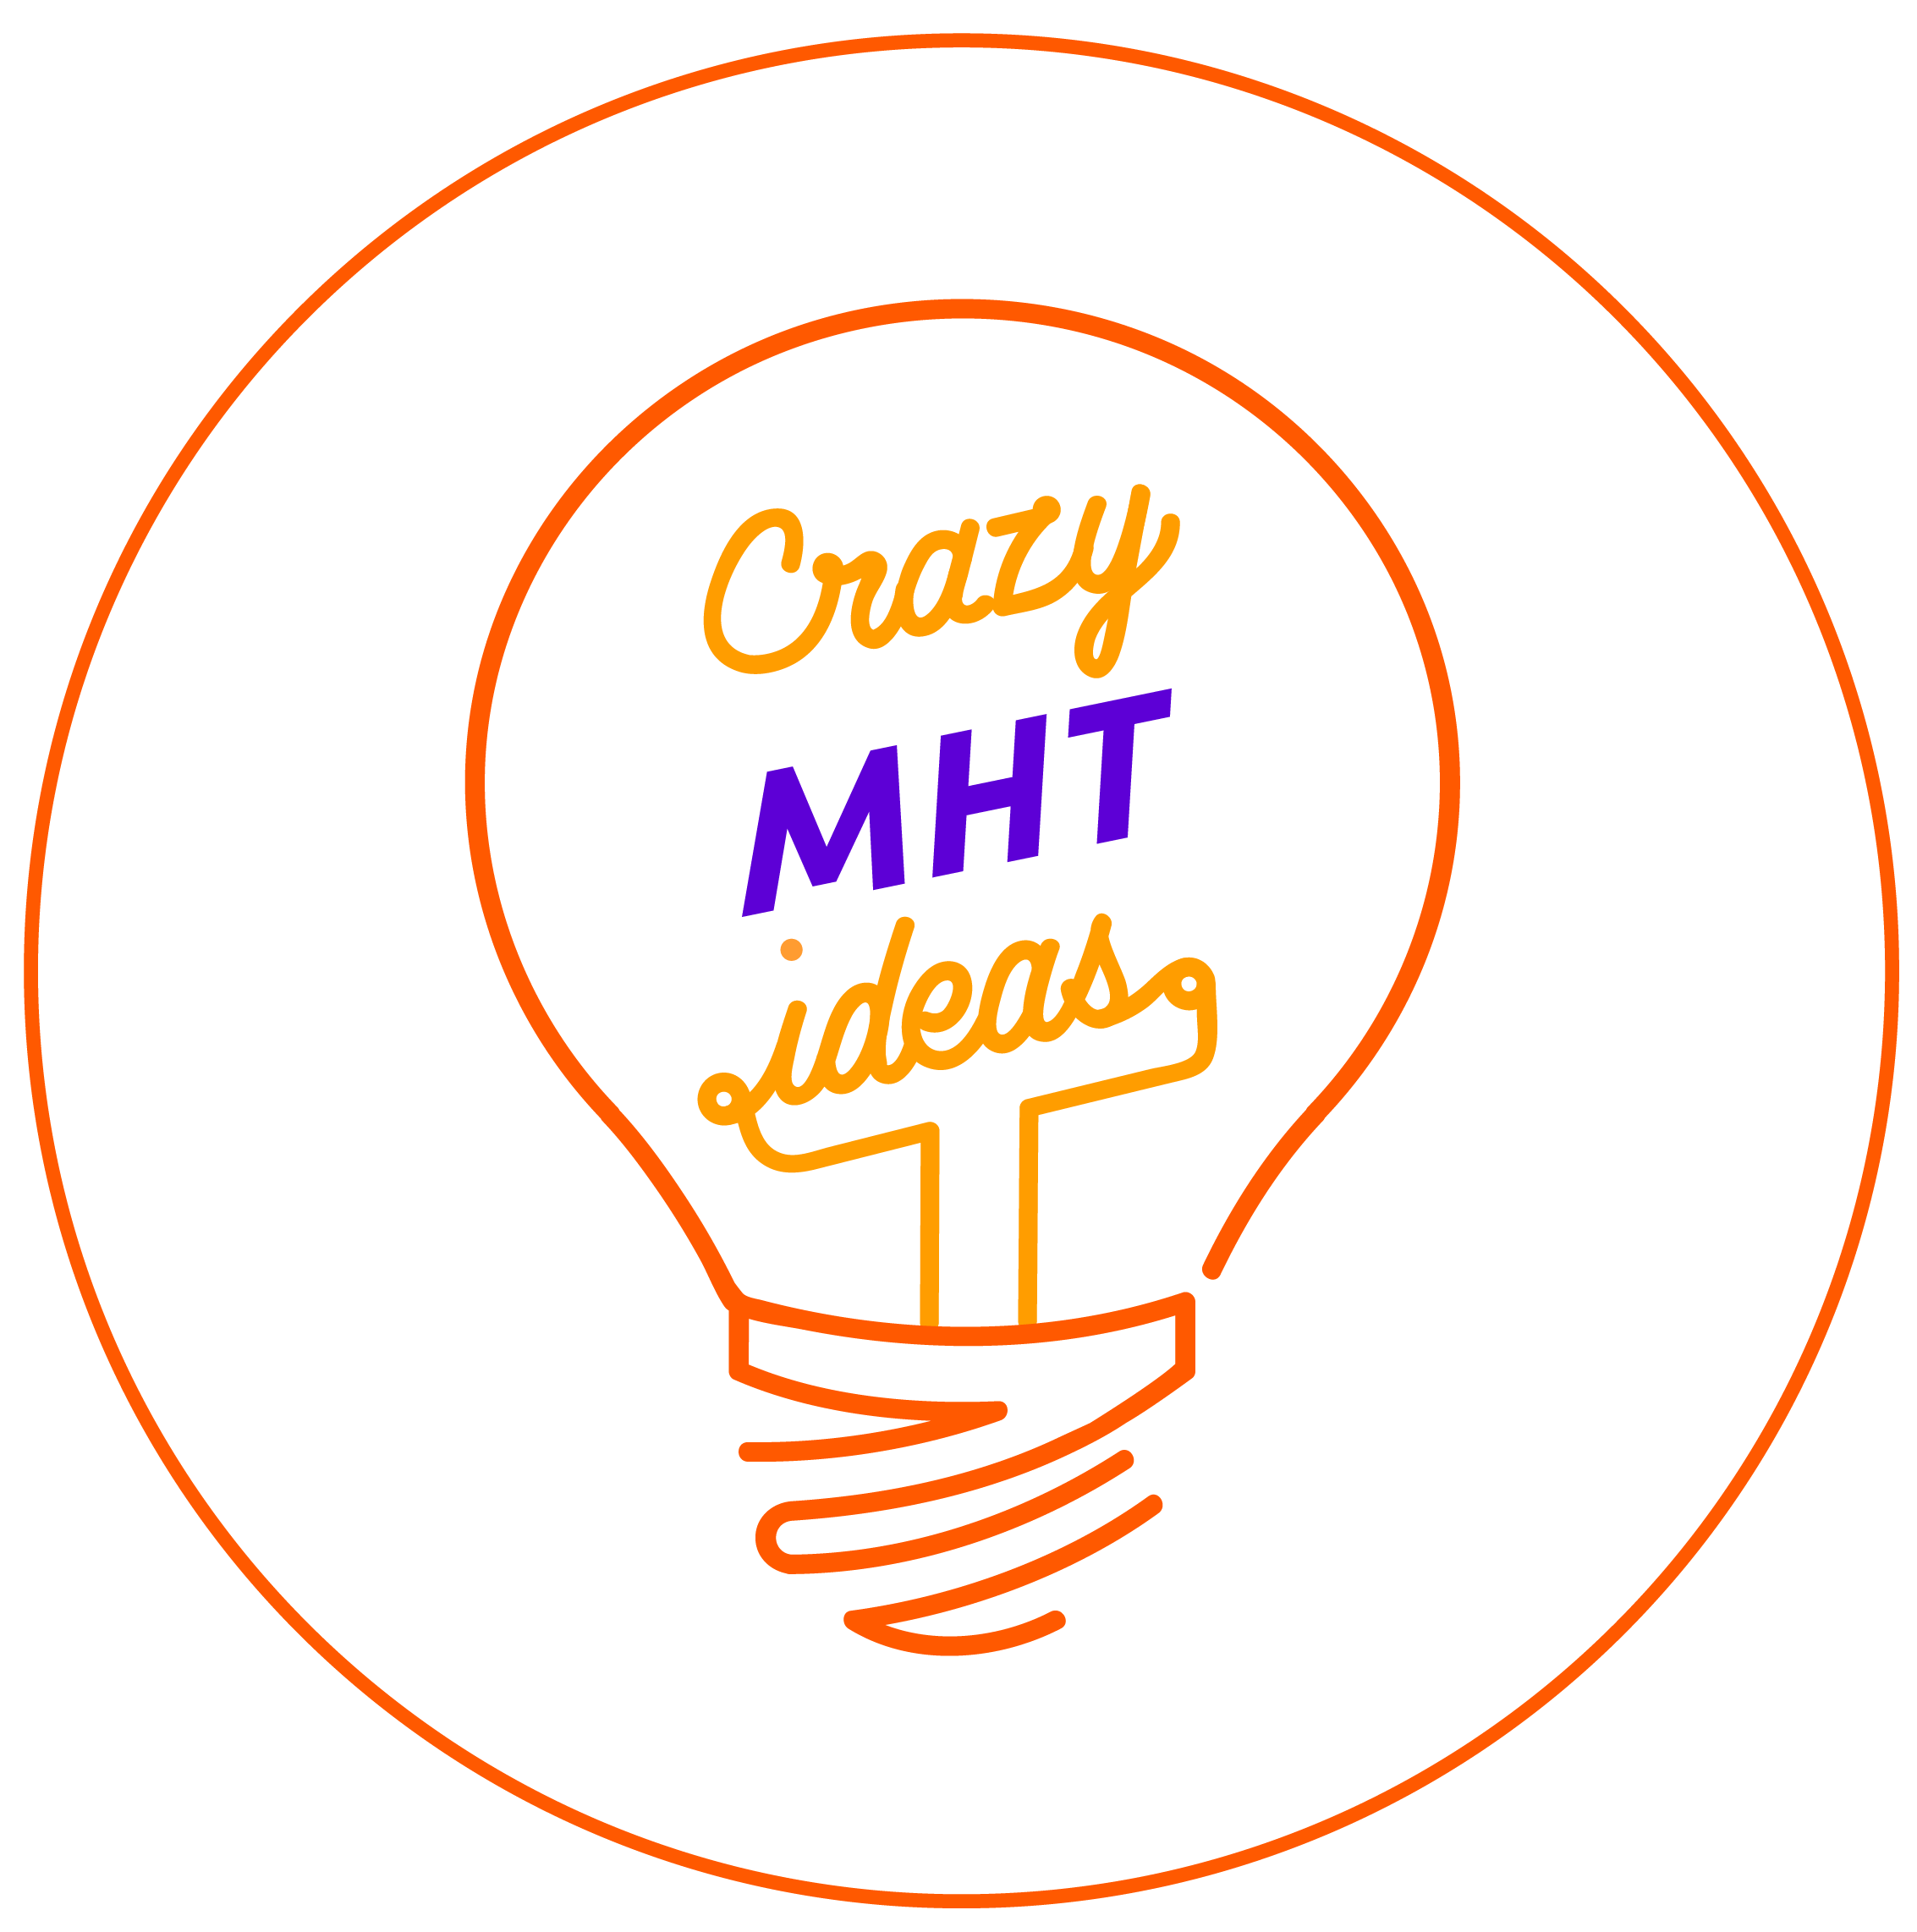 CrazyMHT IDeas